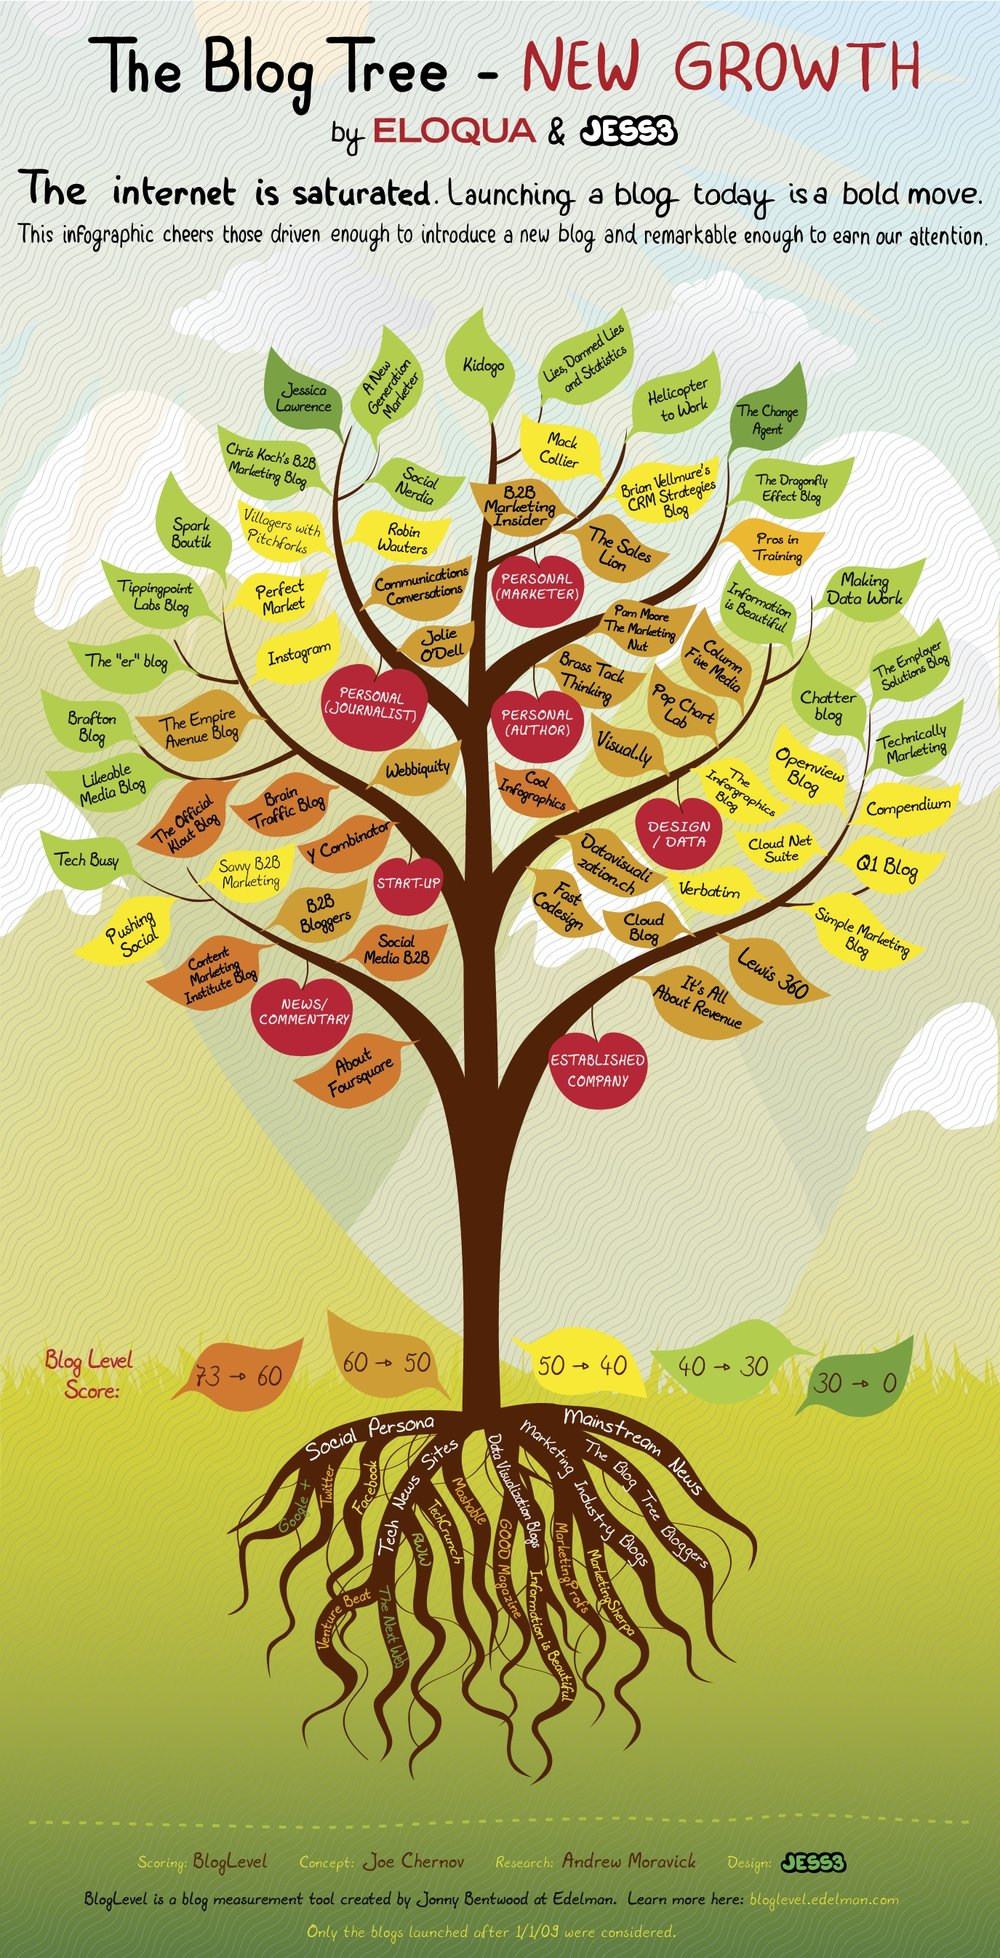 The Blog Tree: New Growth infographic and Q&A